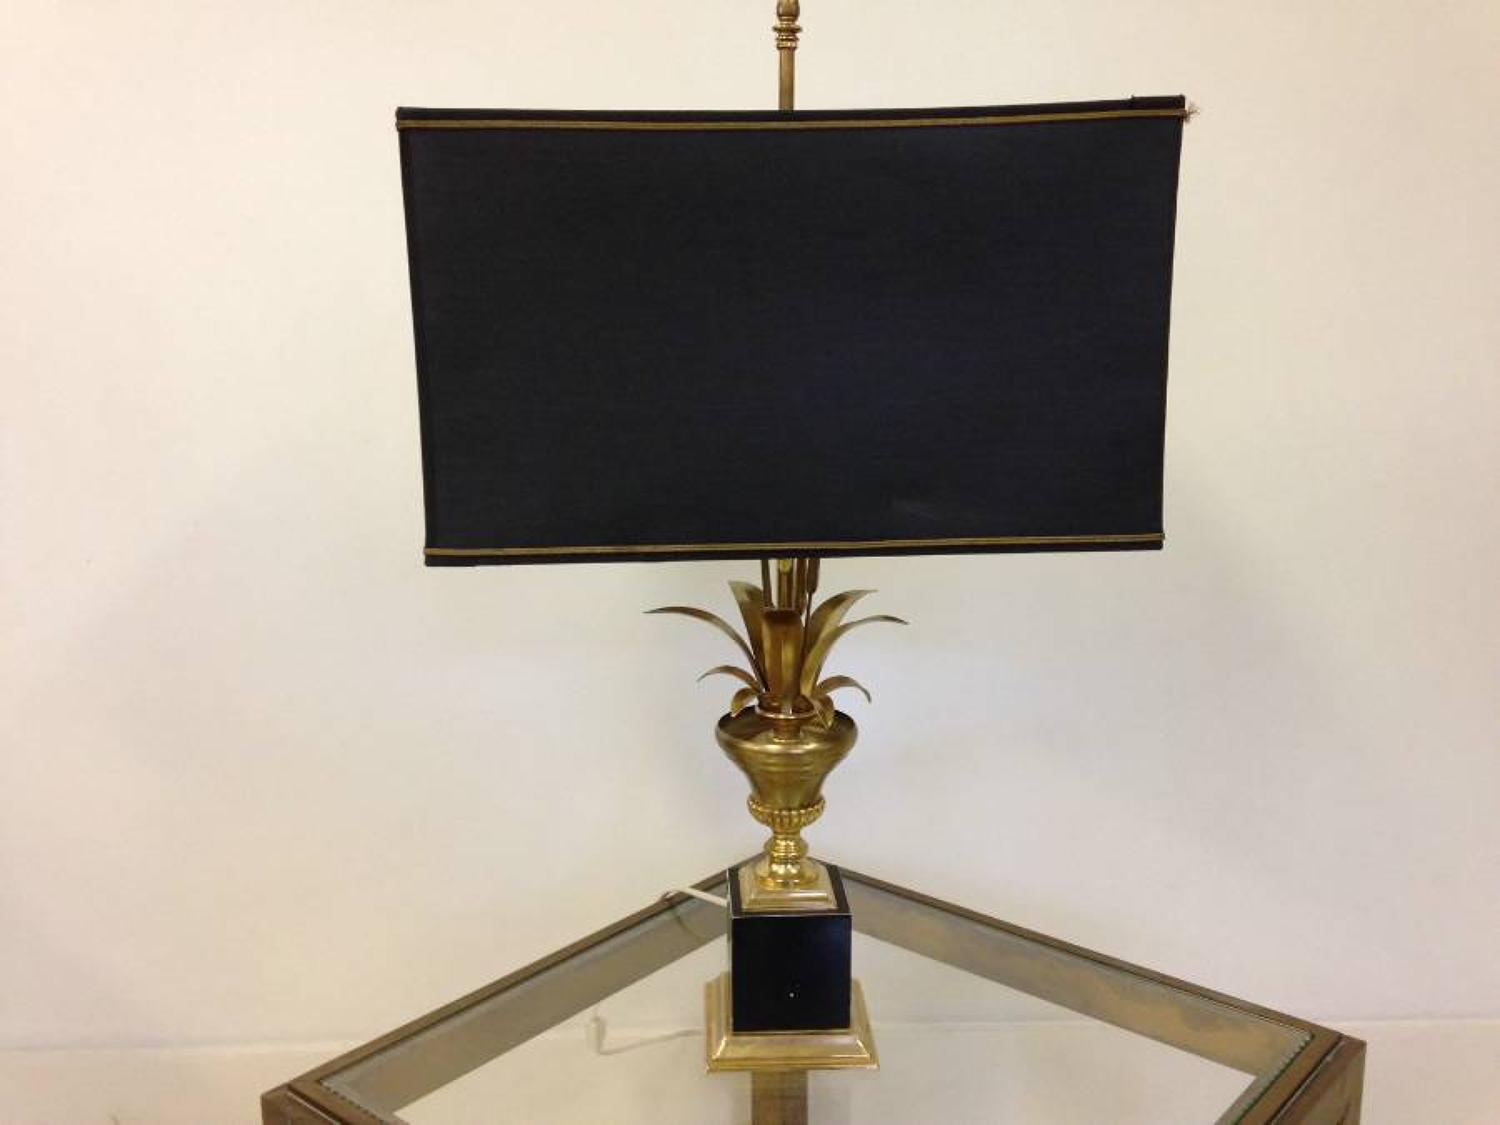 Brass and black metal wheat sheaf lamp